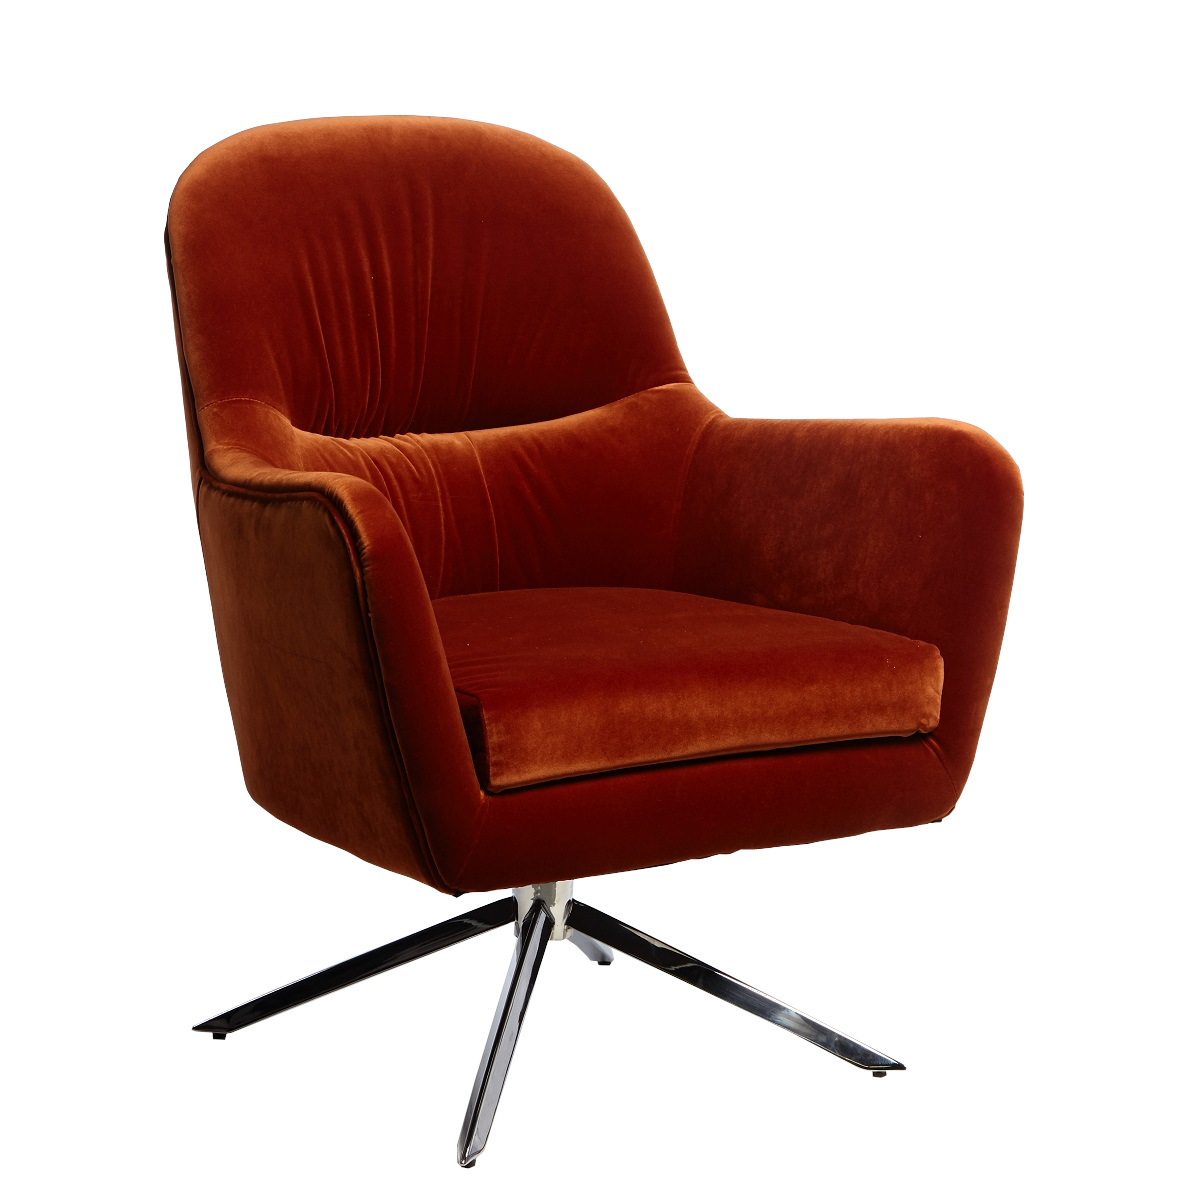 Heather Chair Orange Chrome